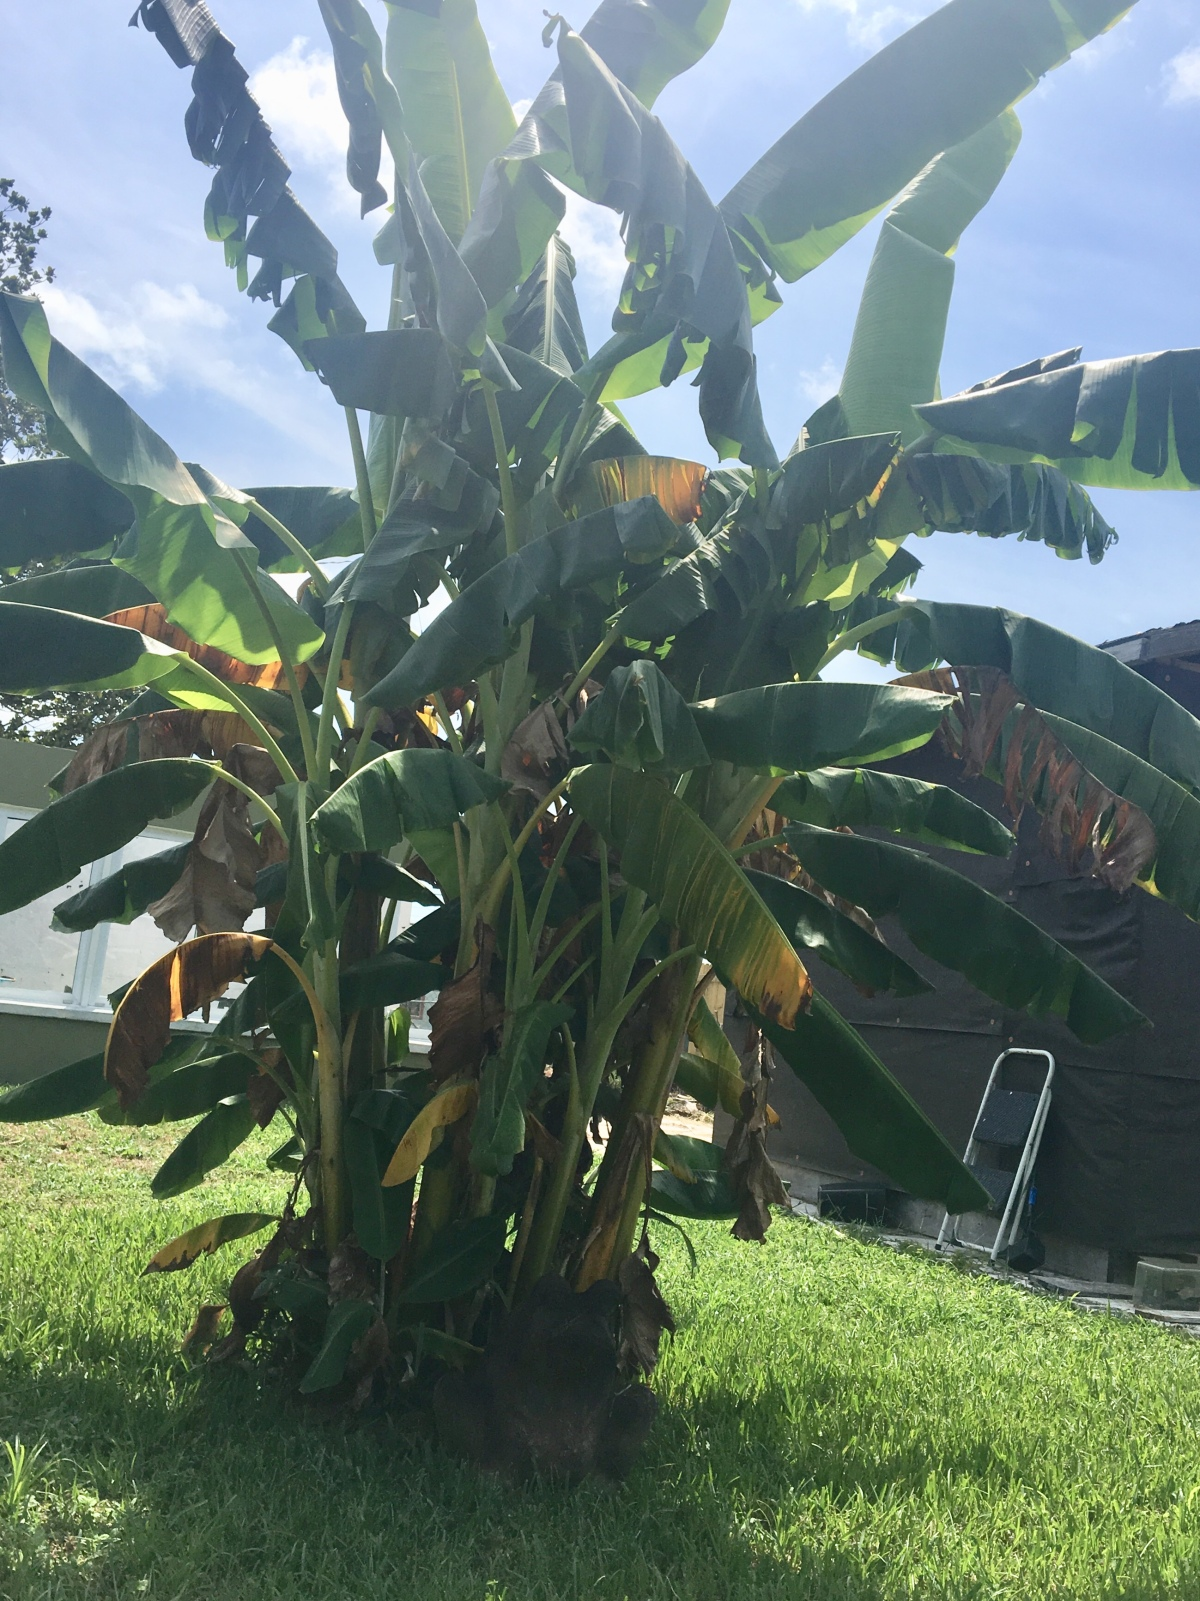 This old banana tree